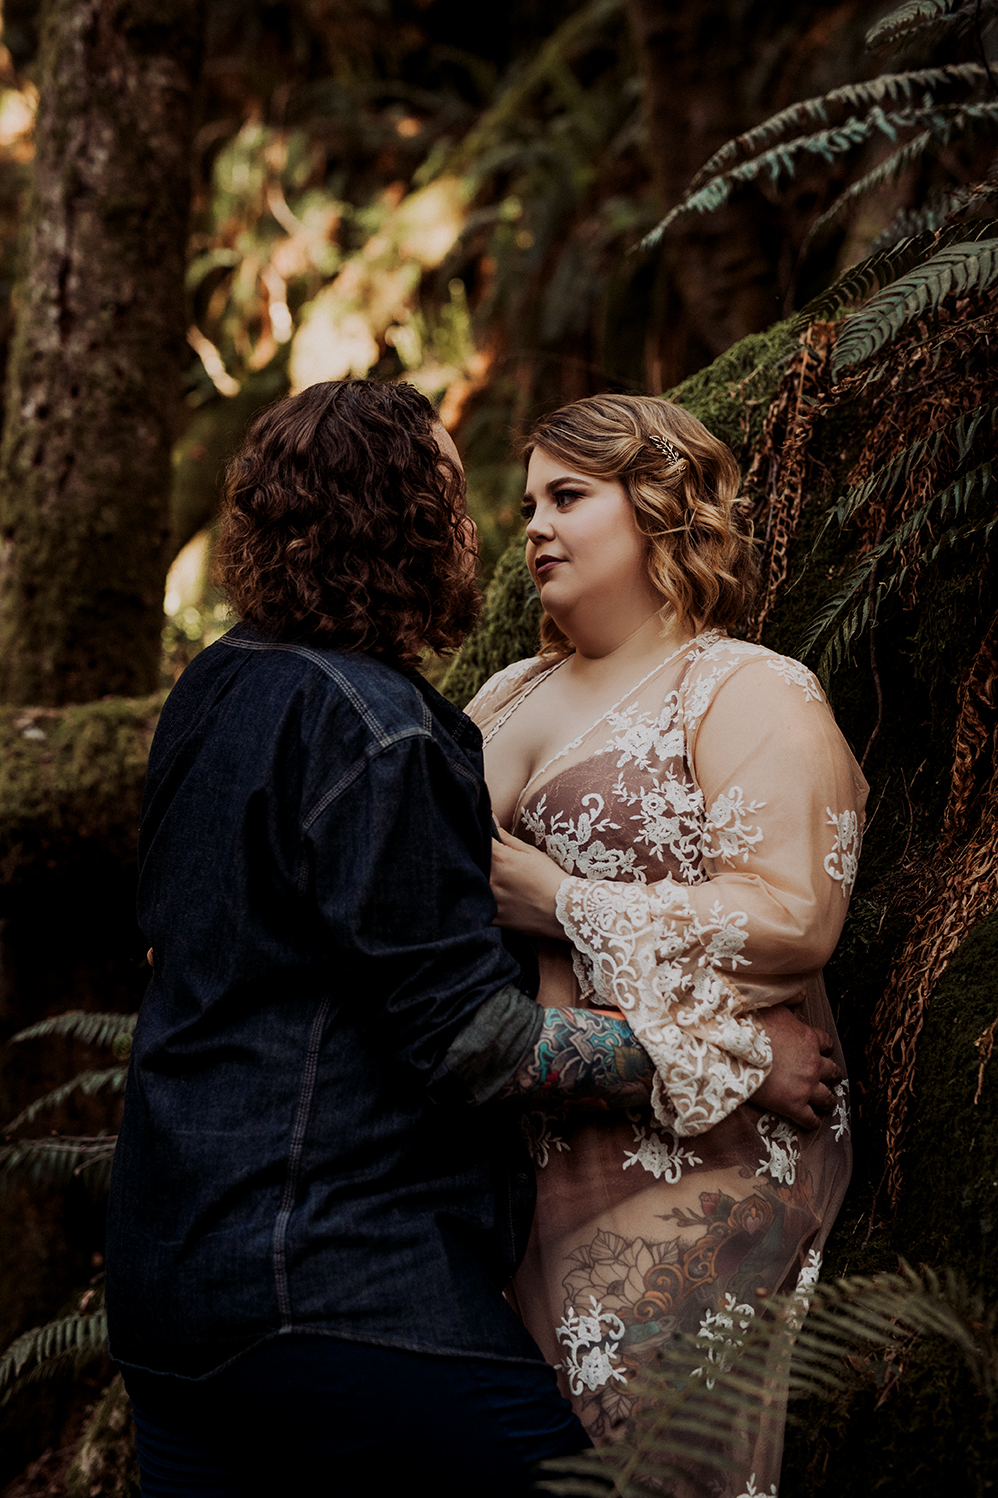 Vancouver-Island-Couples-Boudoir-Moss-Photography-13.jpg